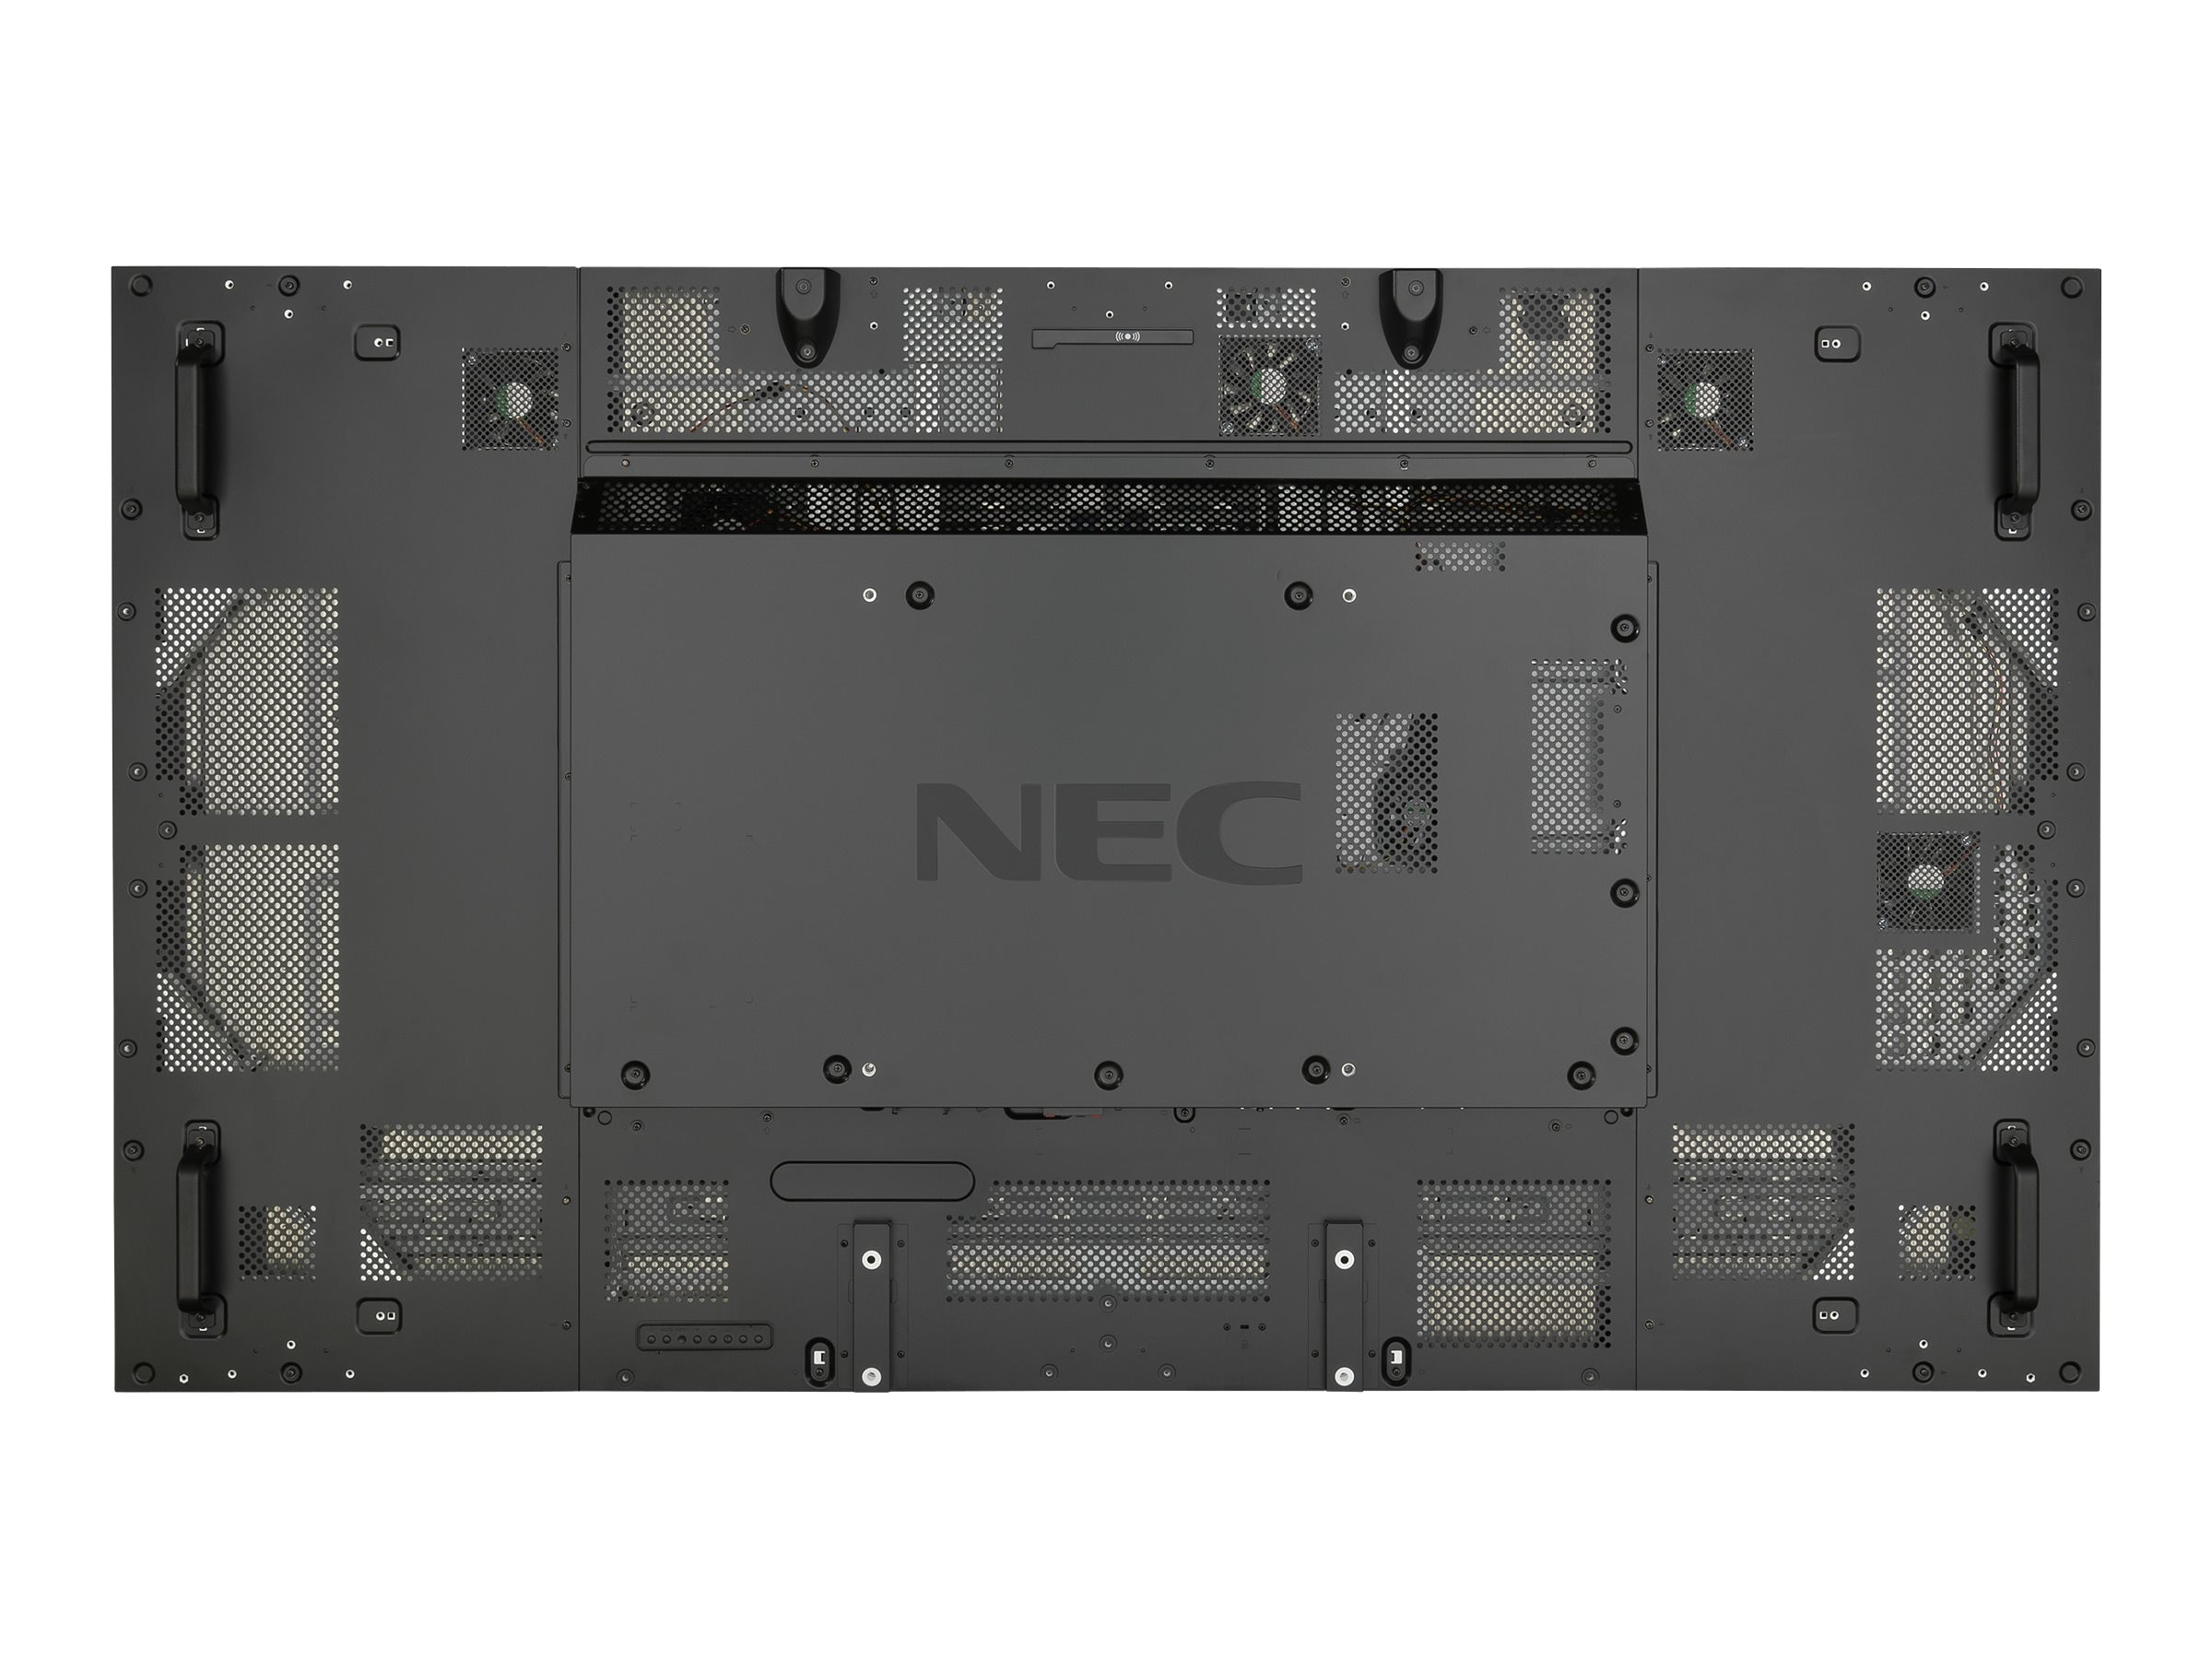 NEC 75 X754HB Full HD LED-LCD Display, Black, X754HB